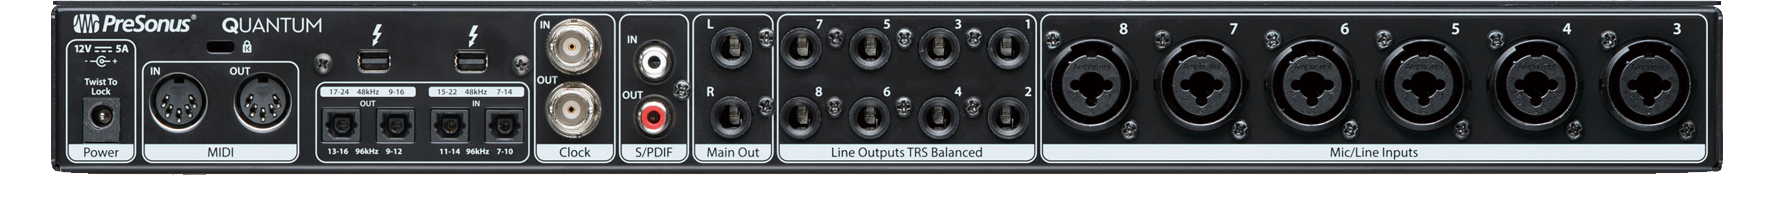 ▲Quantumのリア・パネル。左から、MIDI IN&OUT、Thunderbolt端子×2、ADAT&S/MUX OUT×2とIN×2(オプティカル)、クロック入出力(BNC)、S/P DIF IN&OUT(コアキシャル)、Main Out(フォーンL/R)、Line Outputs×8(フォーン)、Mic/Line Inputs×6(XLR/フォーン)